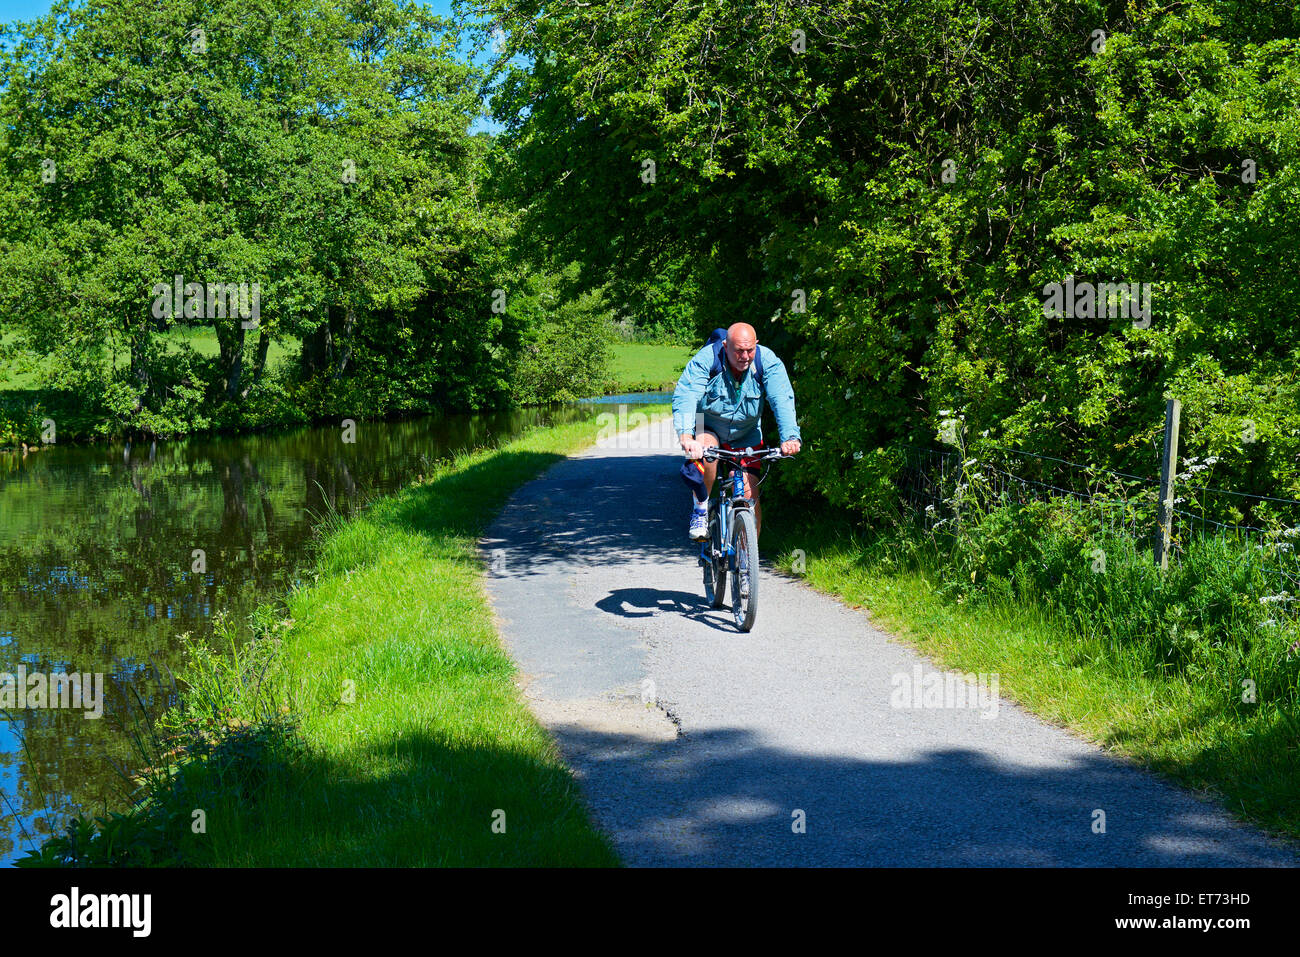 Cyclist on the Leeds-Liverpool Canal near Apperley Bridge, West Yorkshire, England UK - Stock Image